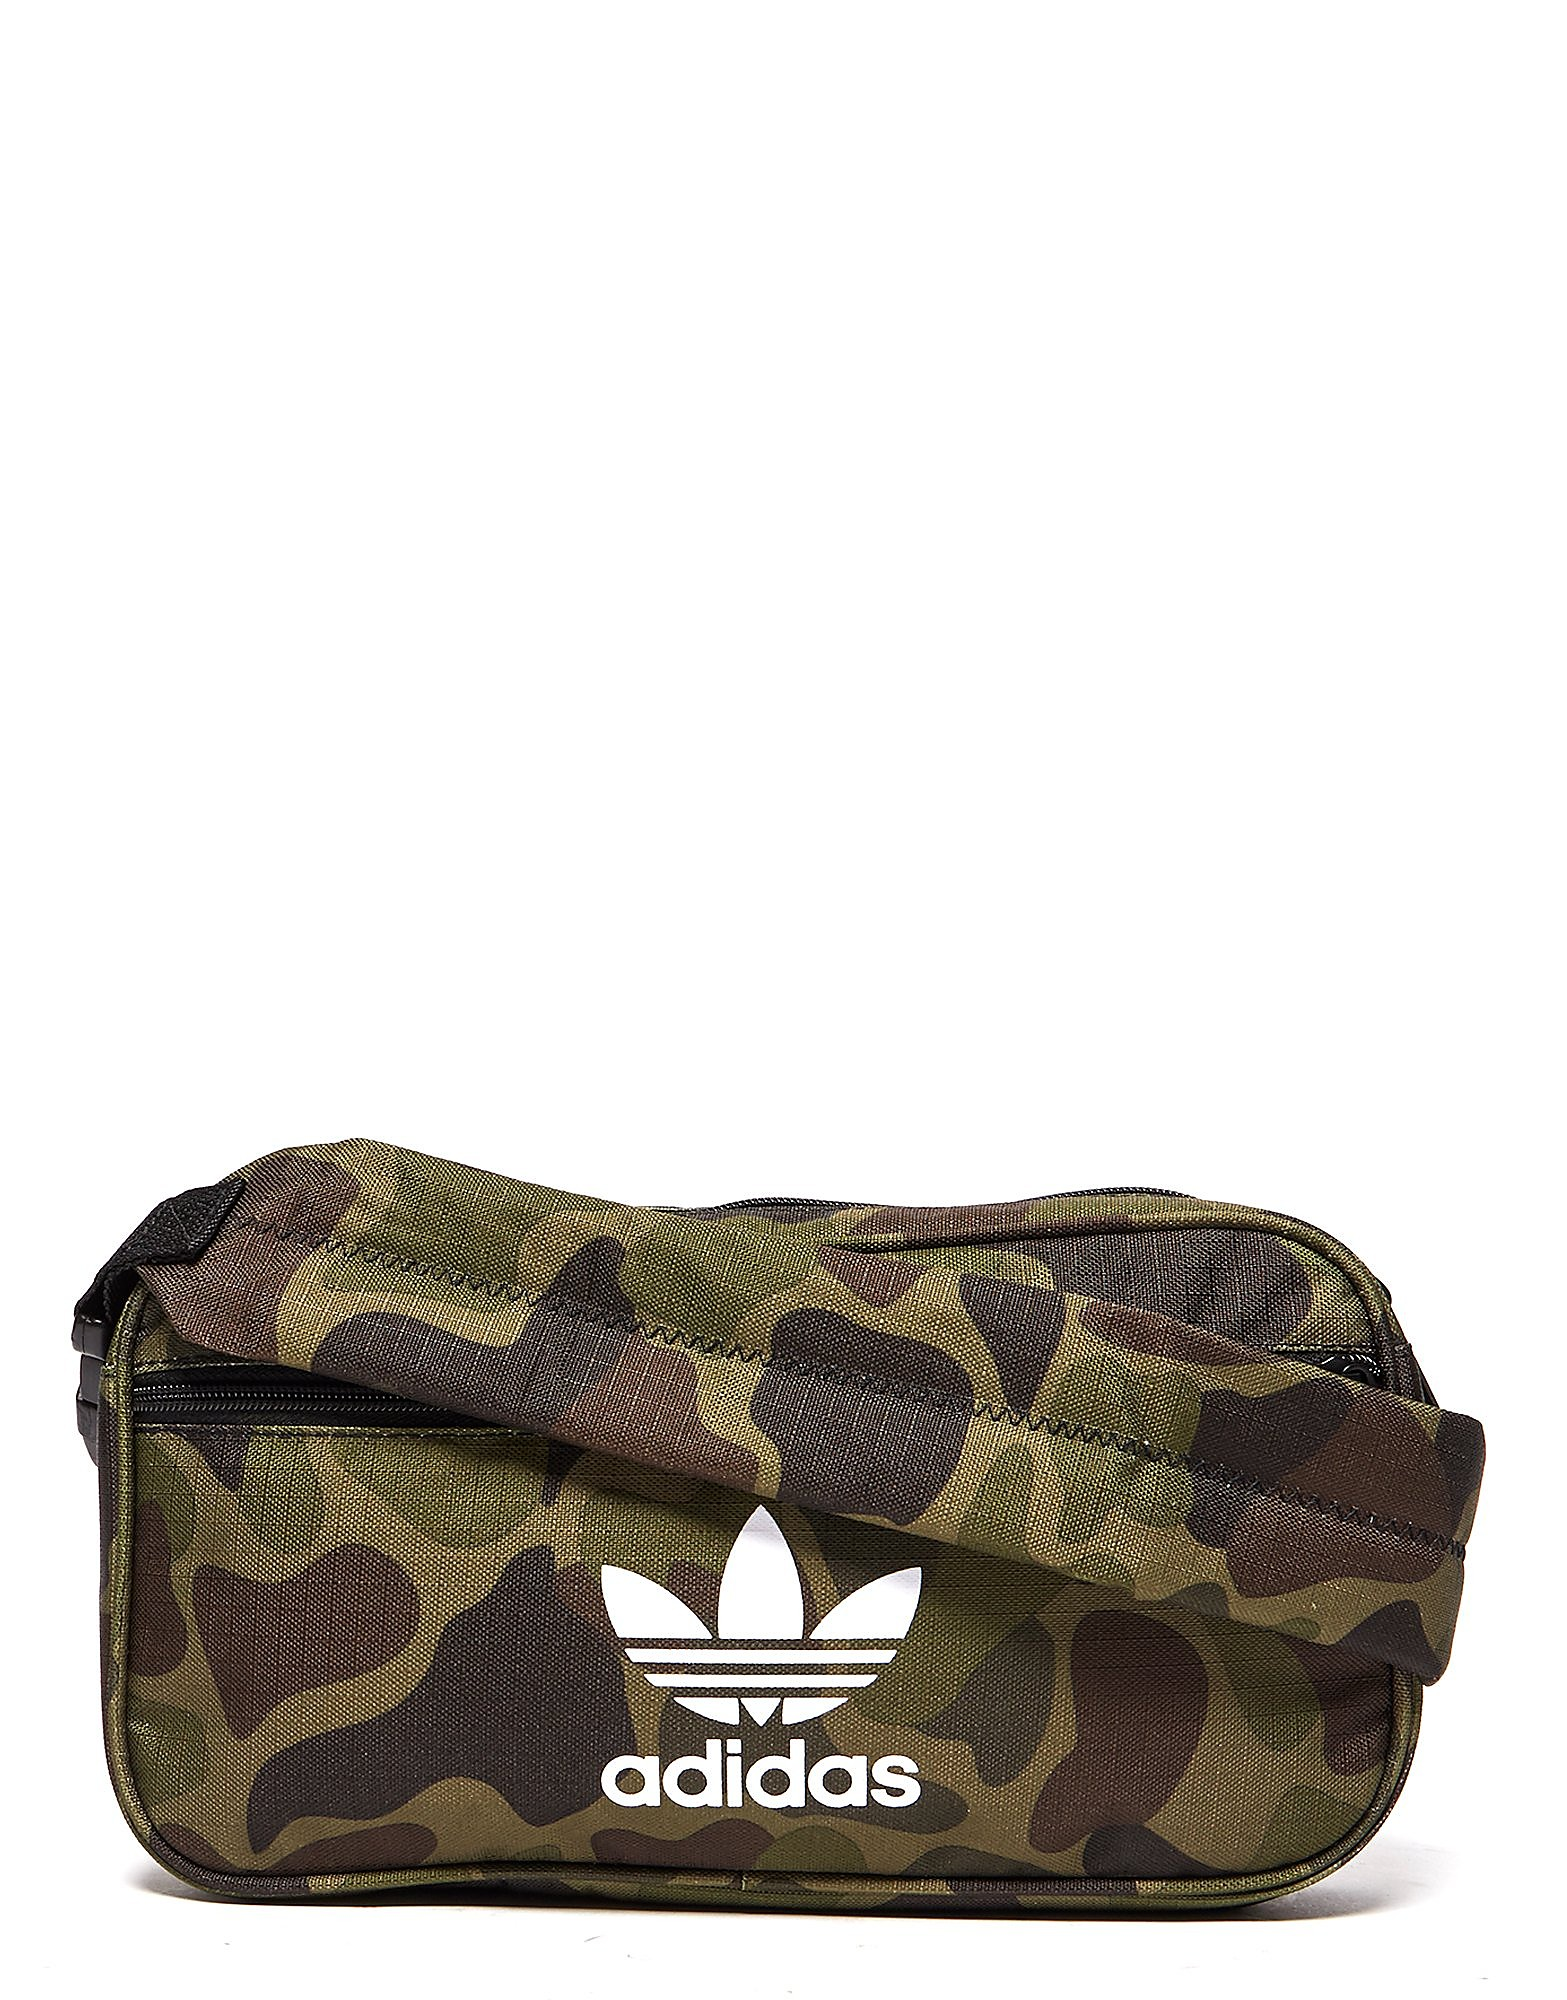 adidas Originals Crossbody Bag